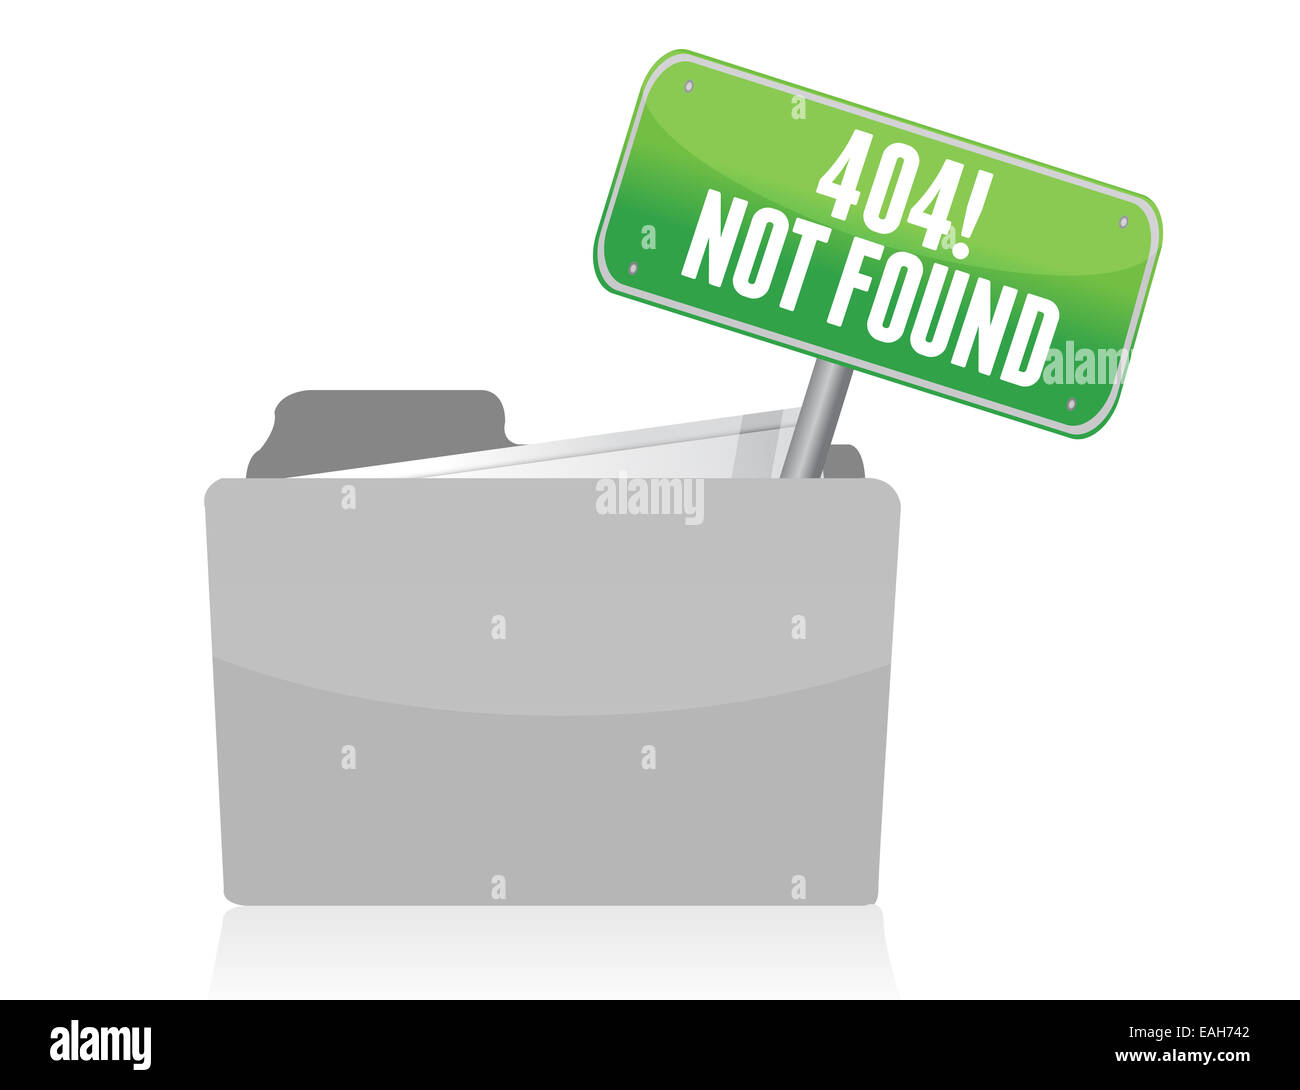 Page not found sign illustration design over white - Stock Image